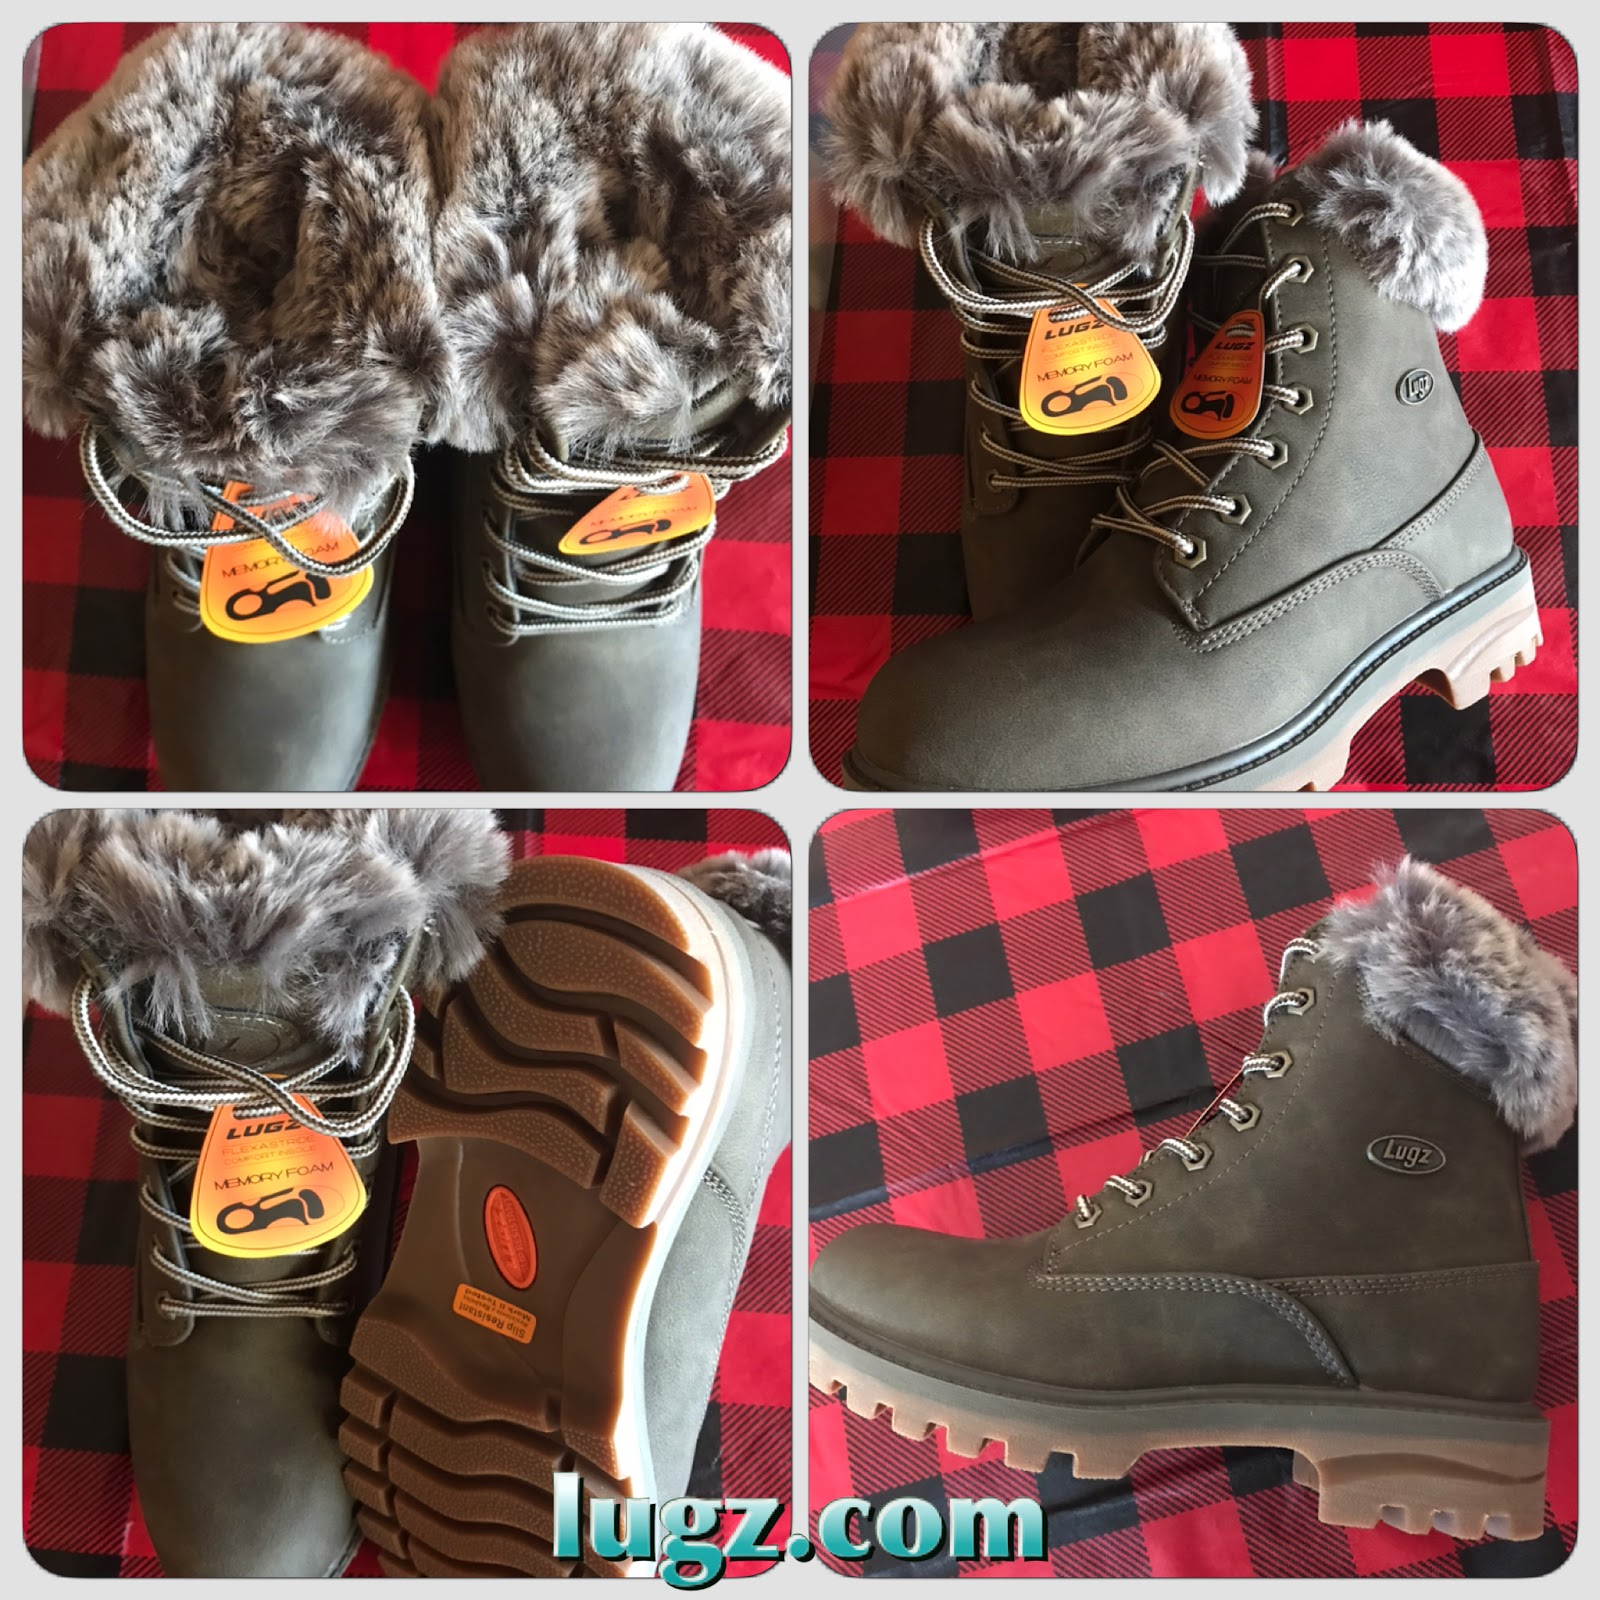 d479e0f01c60 Razzle Dazzle Styles  Reviews! GiveAways! Promo! Fashion Blogger   WOMEN S  EMPIRE HI FUR 6-INCH BOOT  84.99  LugzNYC  GiveawayAlert